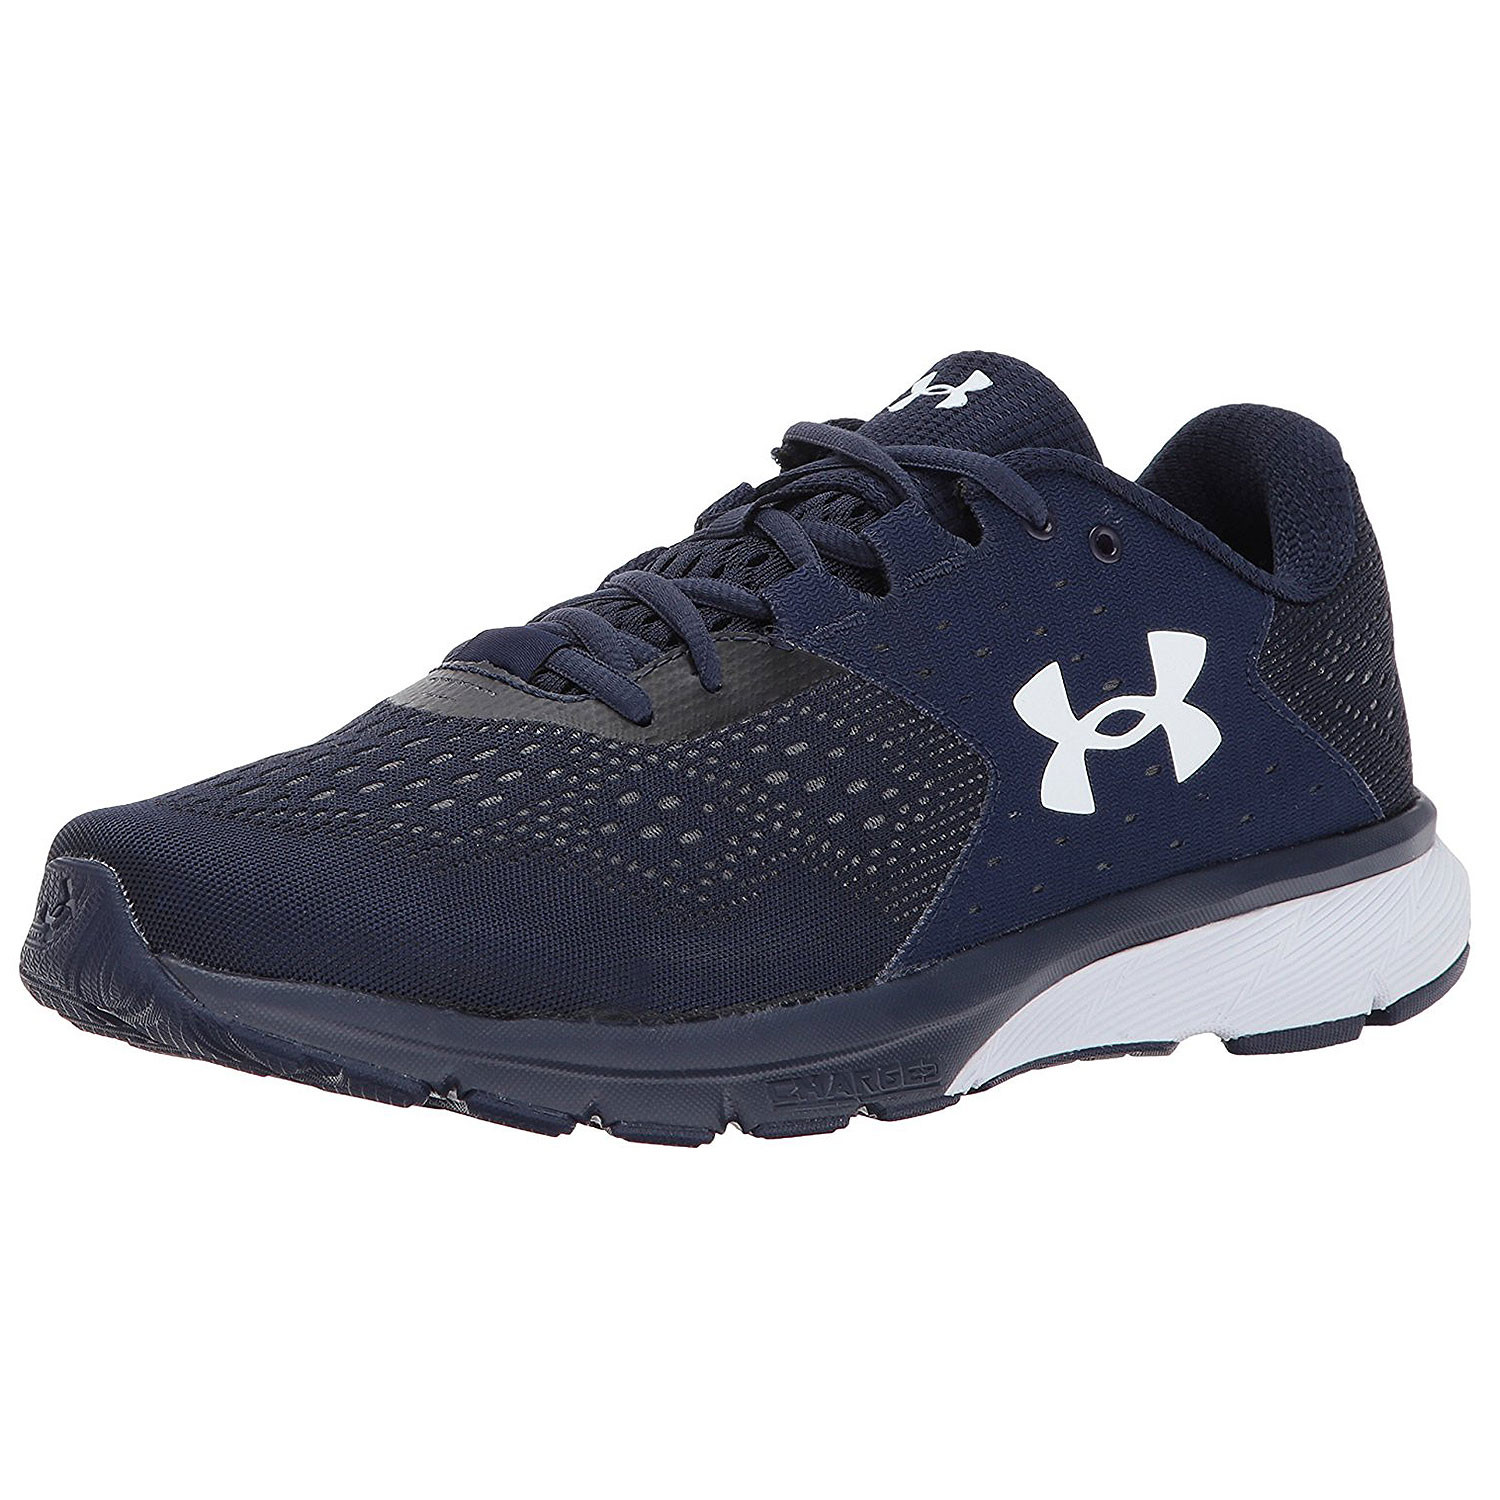 Under Armour Charged Rebel Chaussure Homme  - Chaussures Chaussures-de-running Homme